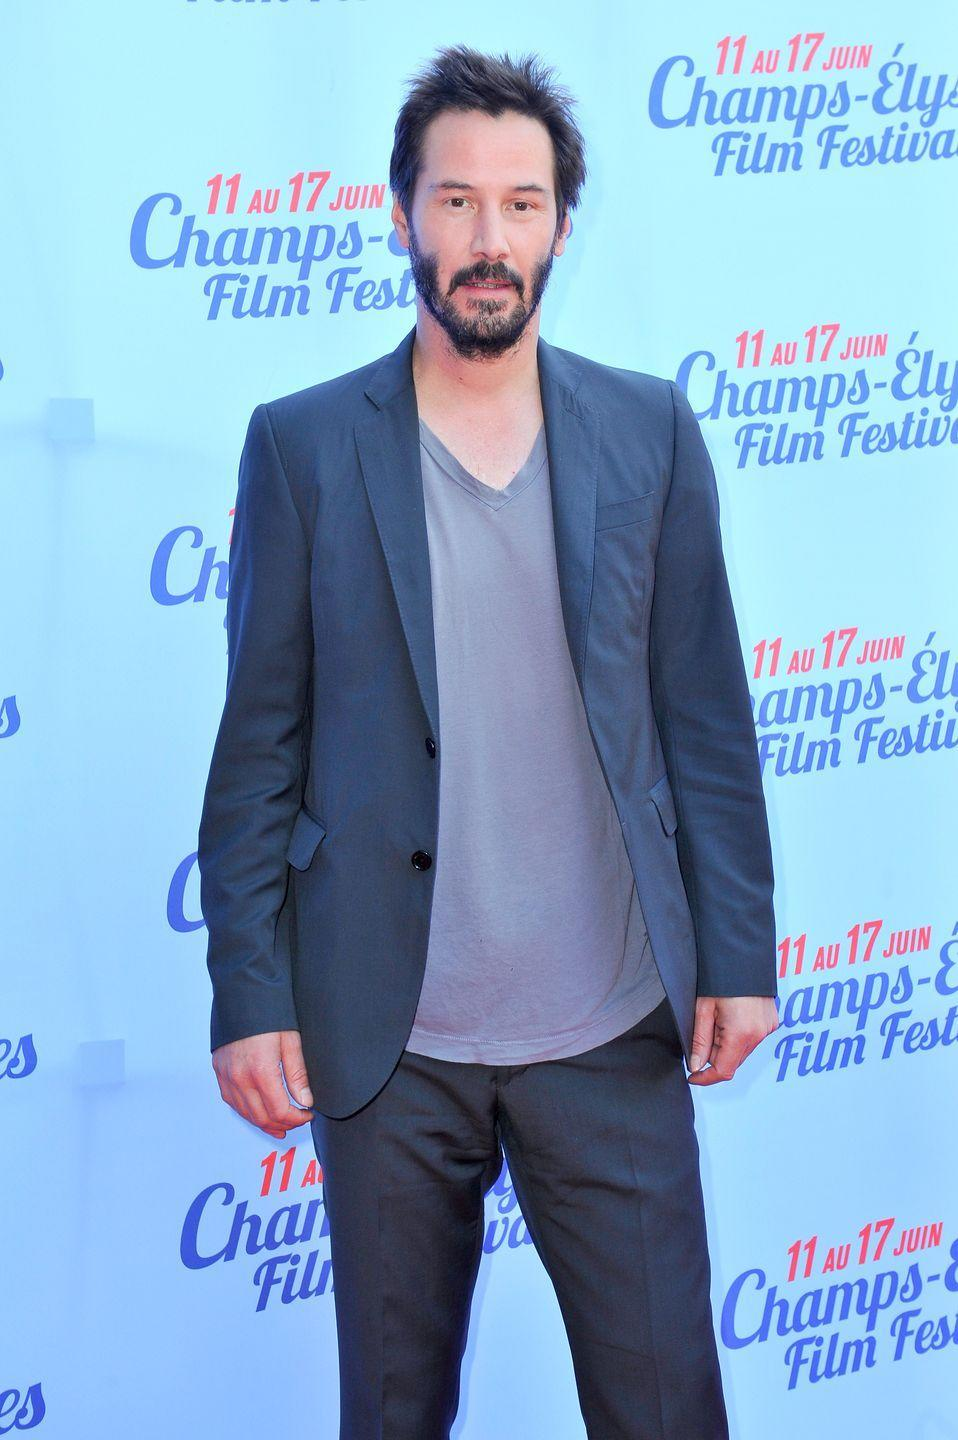 """<p>Still performing his own stunts in his 50s, Reeves needs a workout routine that prioritizes flexibility and stamina over brute strength. """"[Keanu] wasn't lifting crazy heavy weights—it was getting his body moving, getting his muscular endurance and stability—it was just a mindset,"""" long-time trainer Patrick Murphy told <em><a href=""""https://www.menshealth.com/fitness/a27331286/keanu-reeves-training-john-wick-3/"""" rel=""""nofollow noopener"""" target=""""_blank"""" data-ylk=""""slk:Men's Health"""" class=""""link rapid-noclick-resp"""">Men's Health</a></em>. """"He would leave the gym exhausted, but feeling great.""""</p><p><a class=""""link rapid-noclick-resp"""" href=""""https://www.youtube.com/watch?v=vAmWUDqBo80"""" rel=""""nofollow noopener"""" target=""""_blank"""" data-ylk=""""slk:Watch here"""">Watch here</a></p>"""